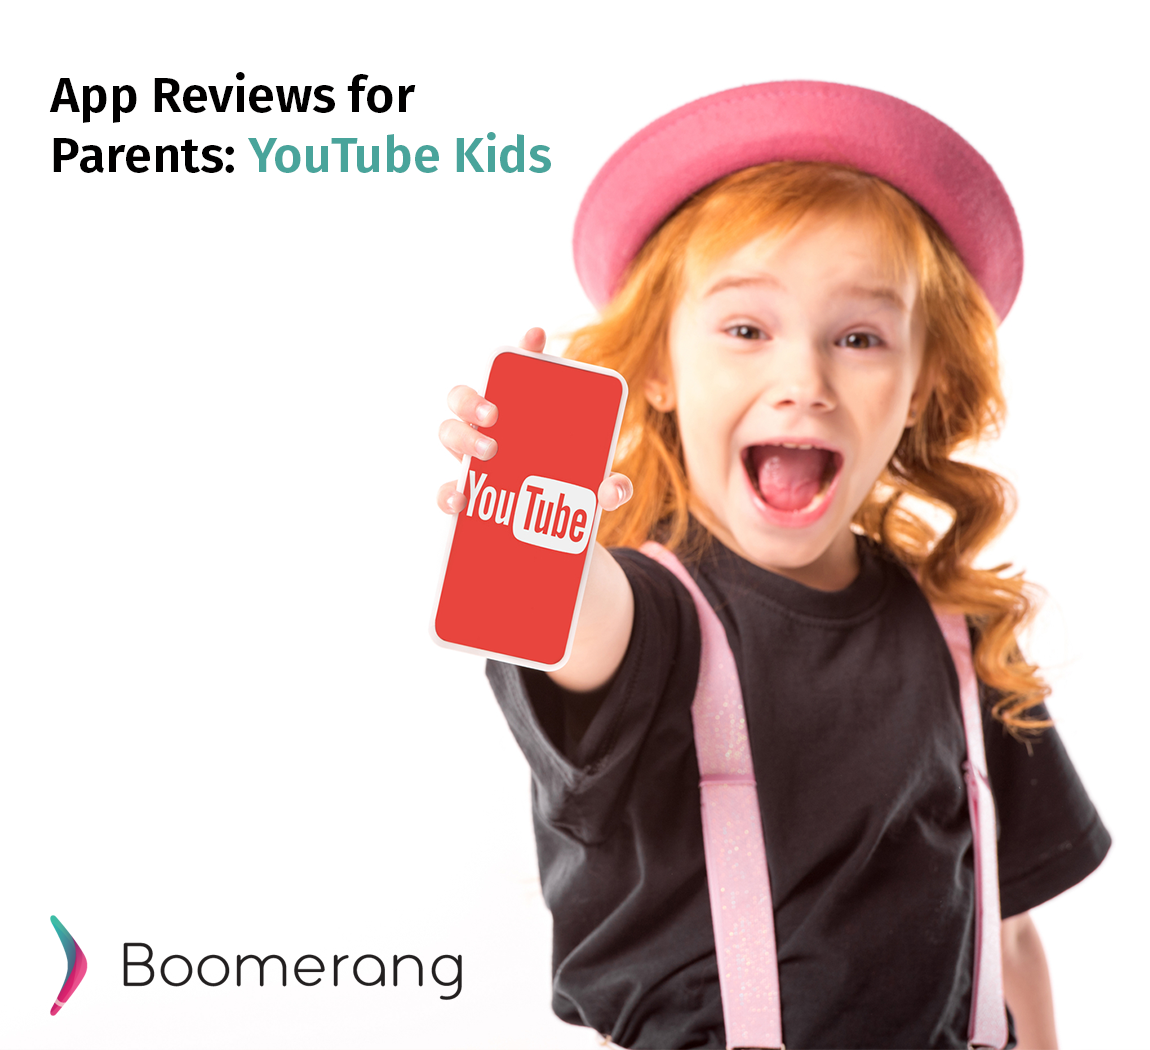 cd6cb1d55 App Reviews For Parents  YouTube Kids